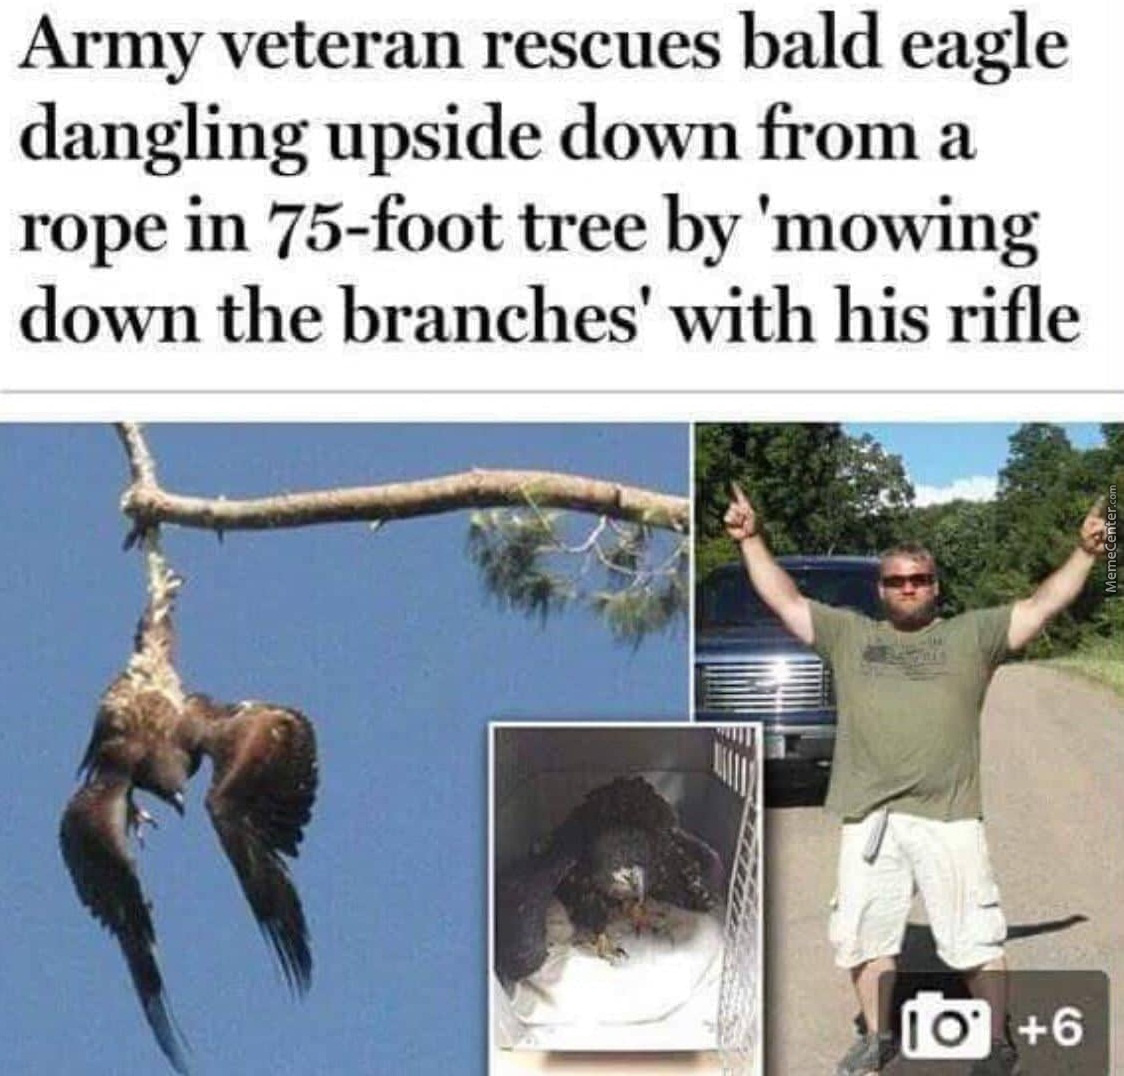 That's The Most American Thing I Have Ever Seen